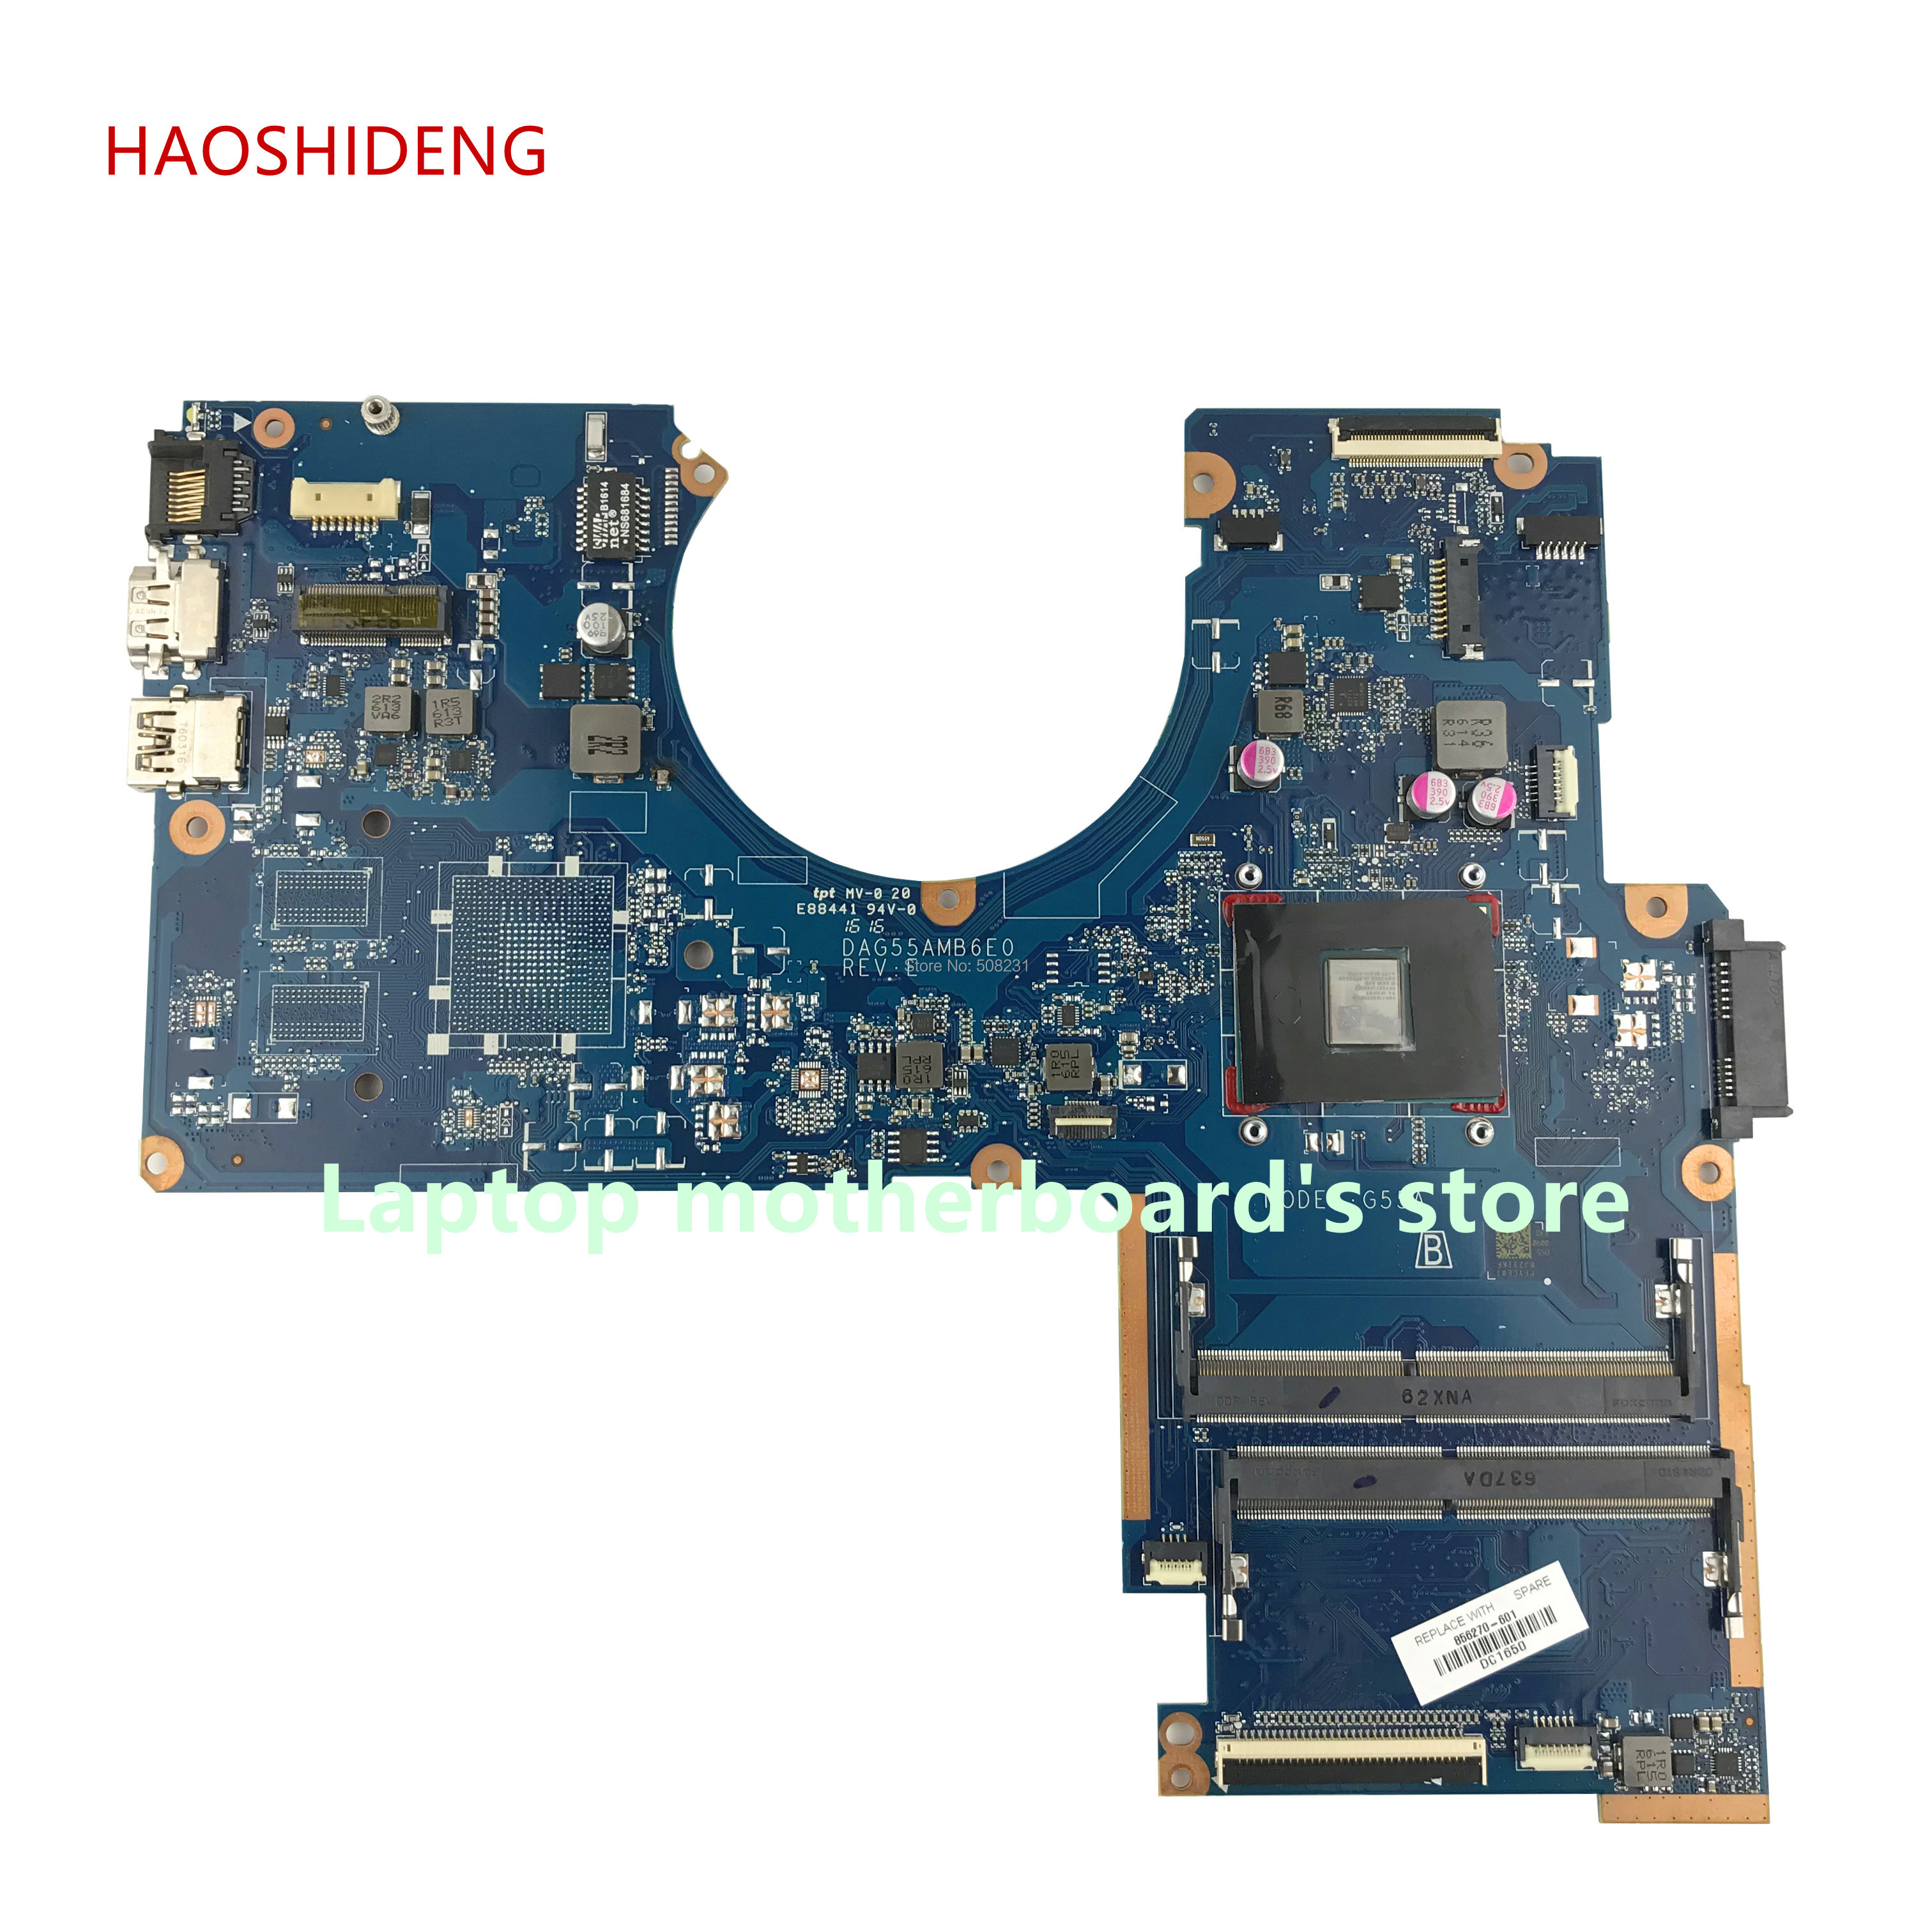 HAOSHIDENG 856270-601 G55A DAG55AMB6E0 mainboard for HP Pavilion Notebook 15-AW 15-AW068NR motherboard with A9-9410 fully Tested haoshideng 809336 601 da0x22mb6d0 x22 for hp pavilion notebook 15 ab 15 ab188cy motherboard with a6 6310 cpu fully tested